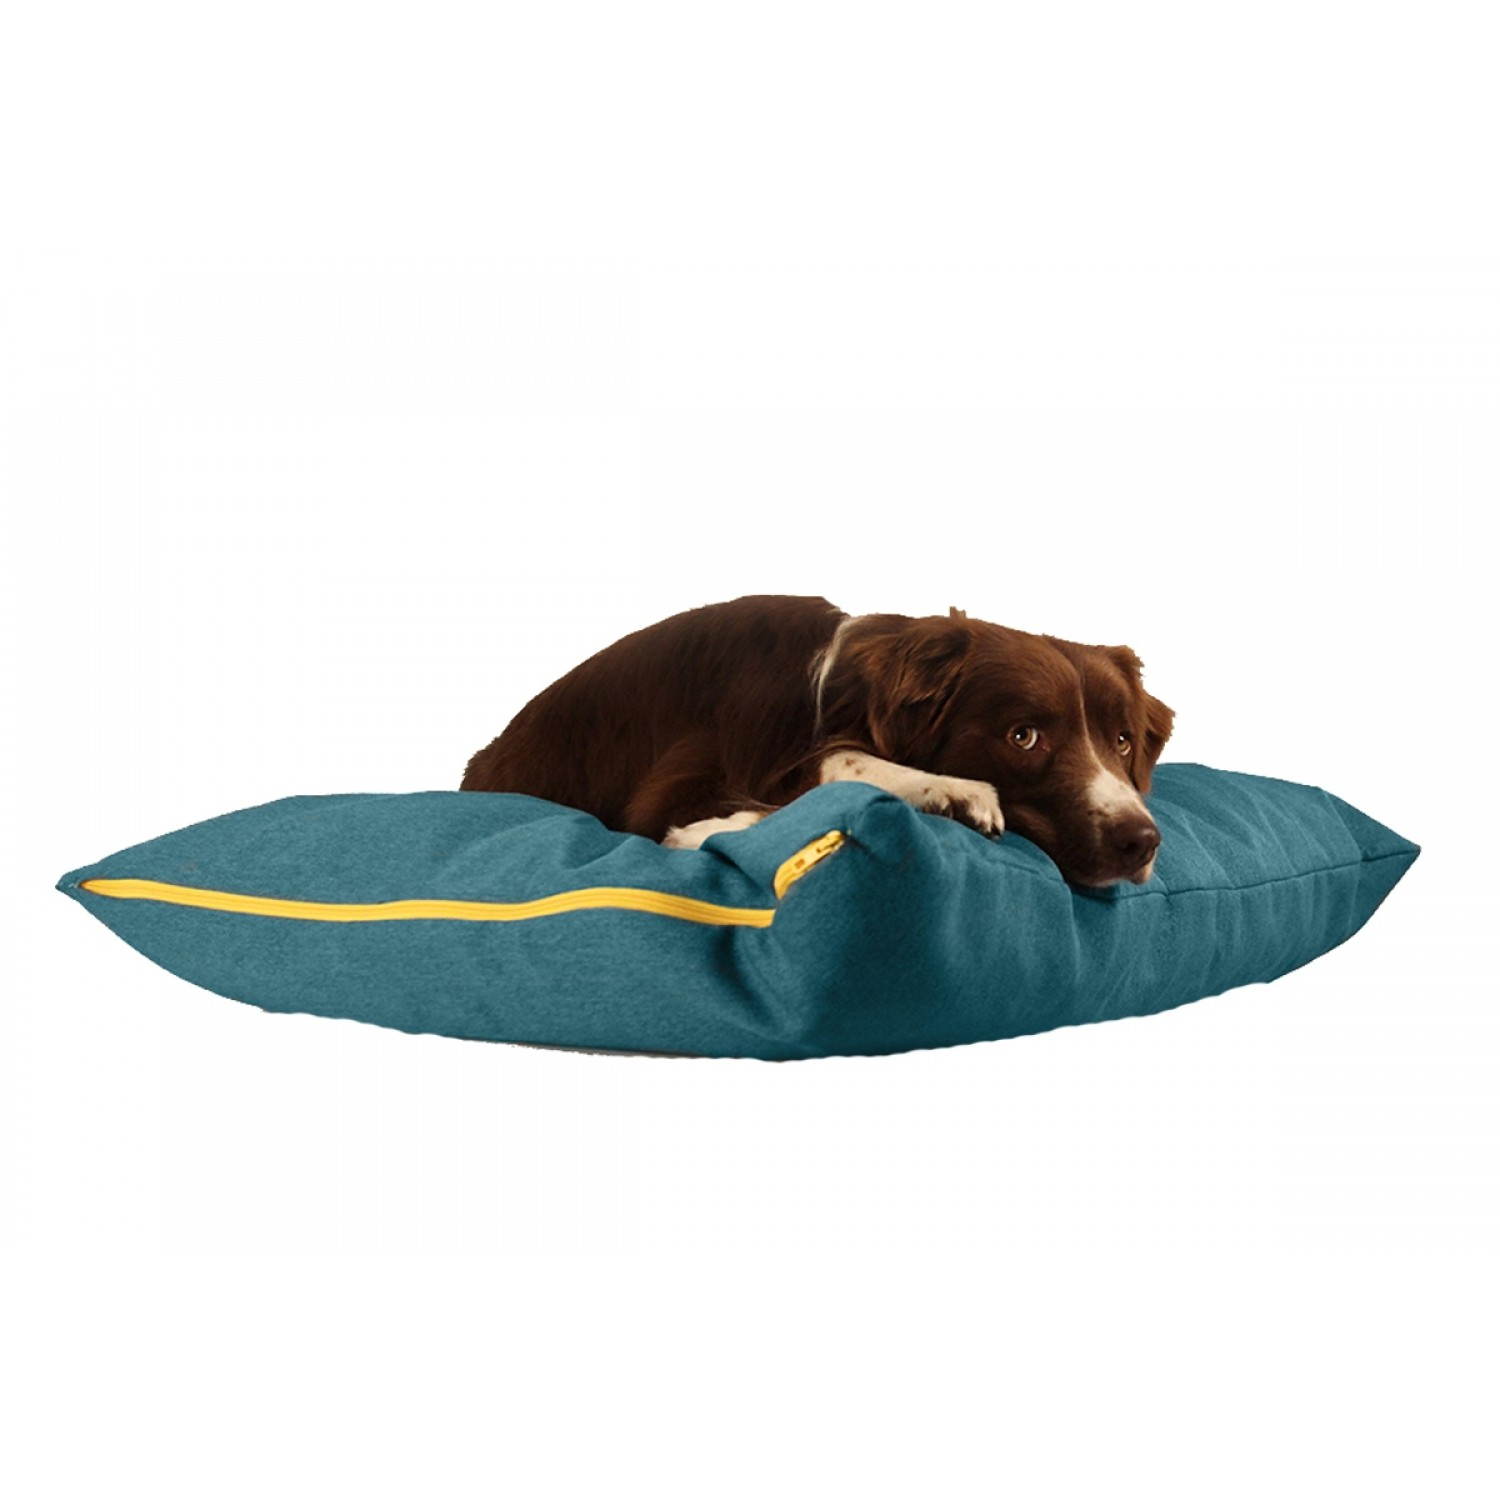 buddy dog pillow petrol blue sustainable resting place for dogs